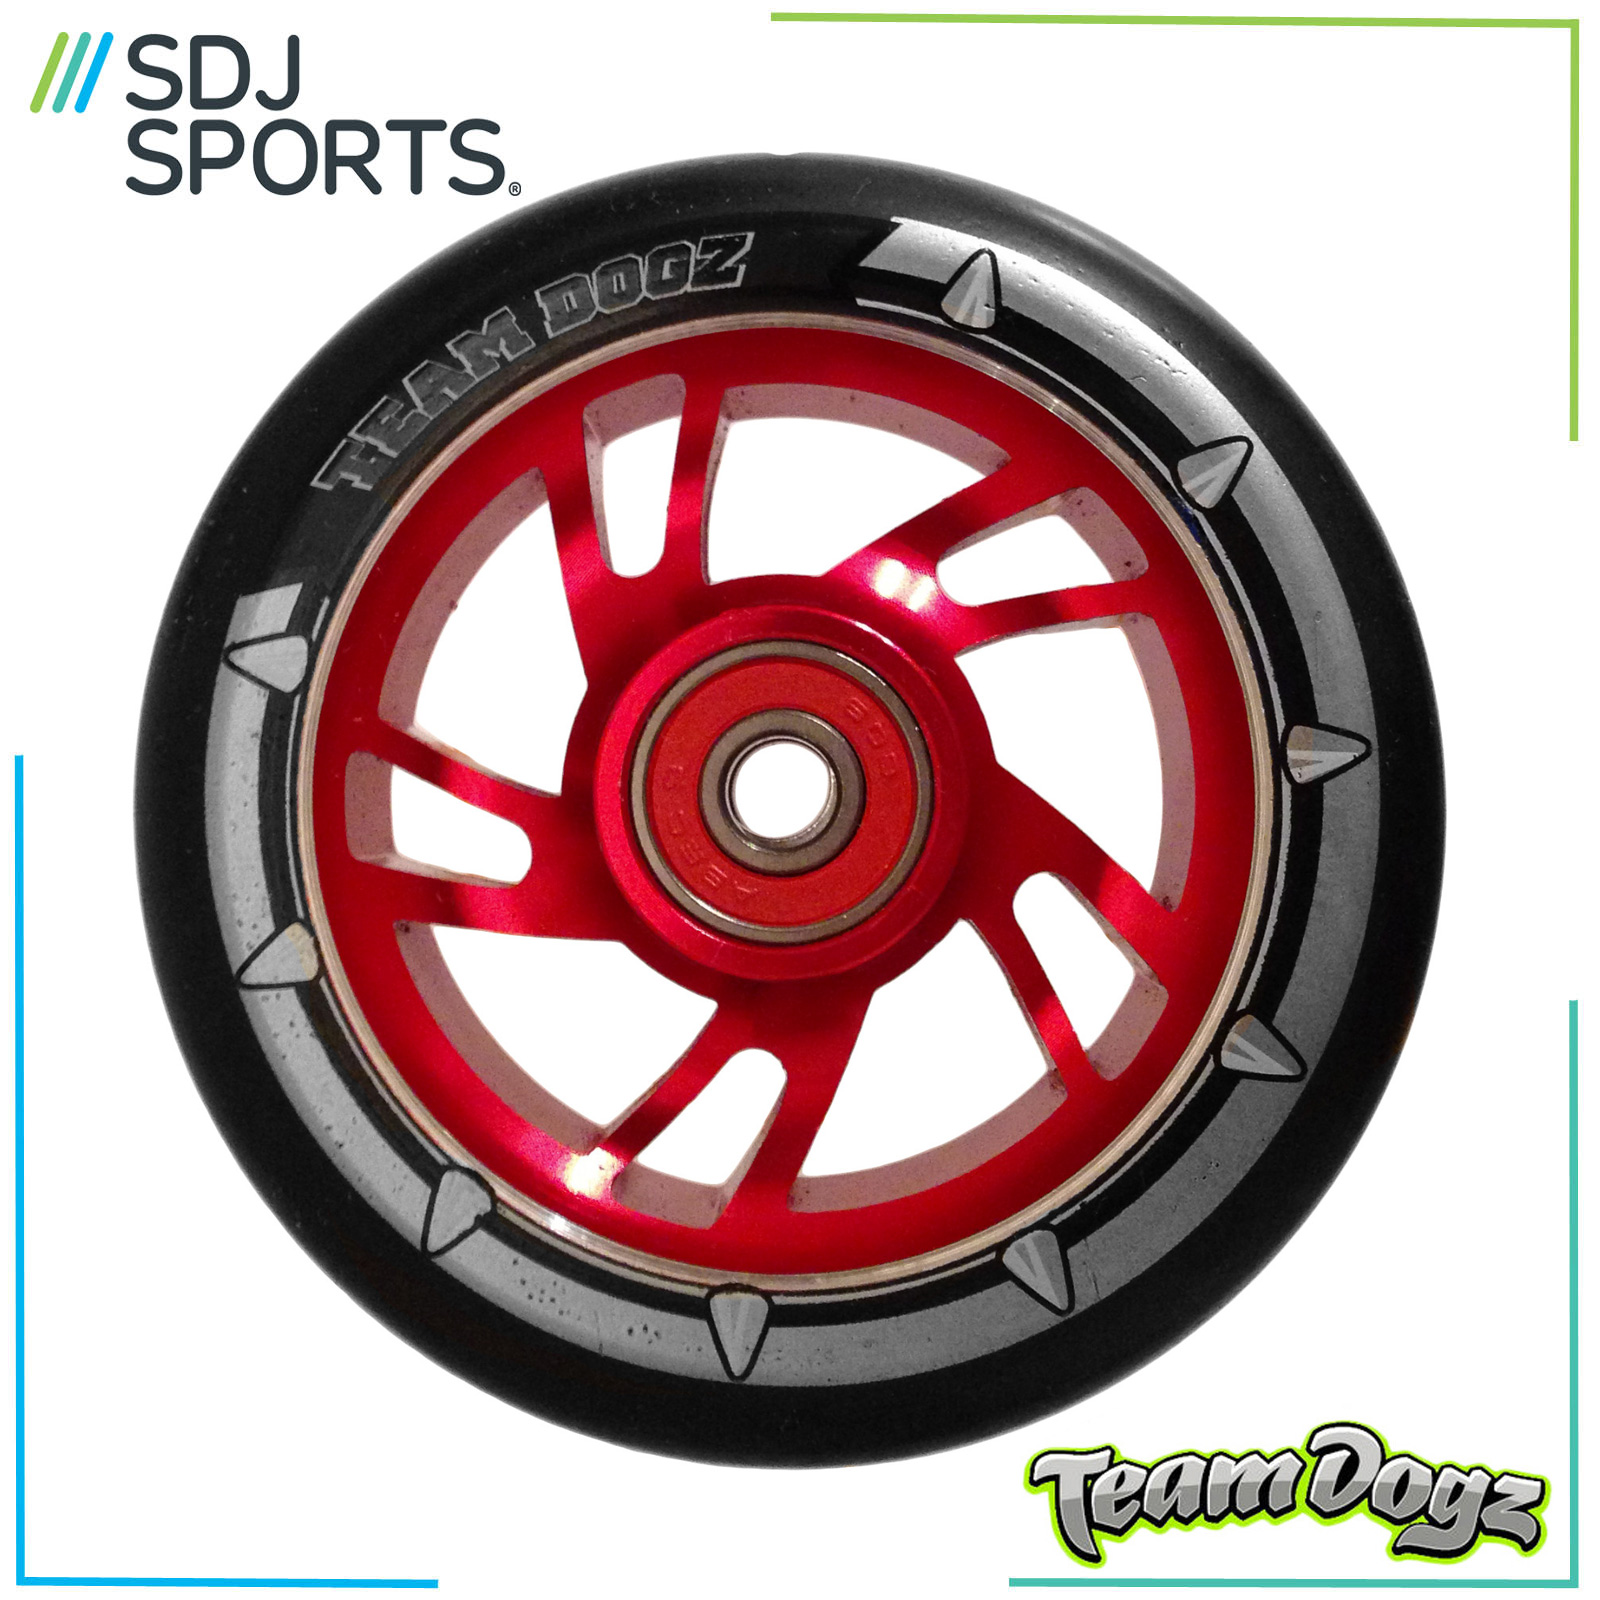 Team-Dogz-100Mm-Swirl-Core-Scooter-Wheel-With-Black-Tyre-amp-Abec-Bearings